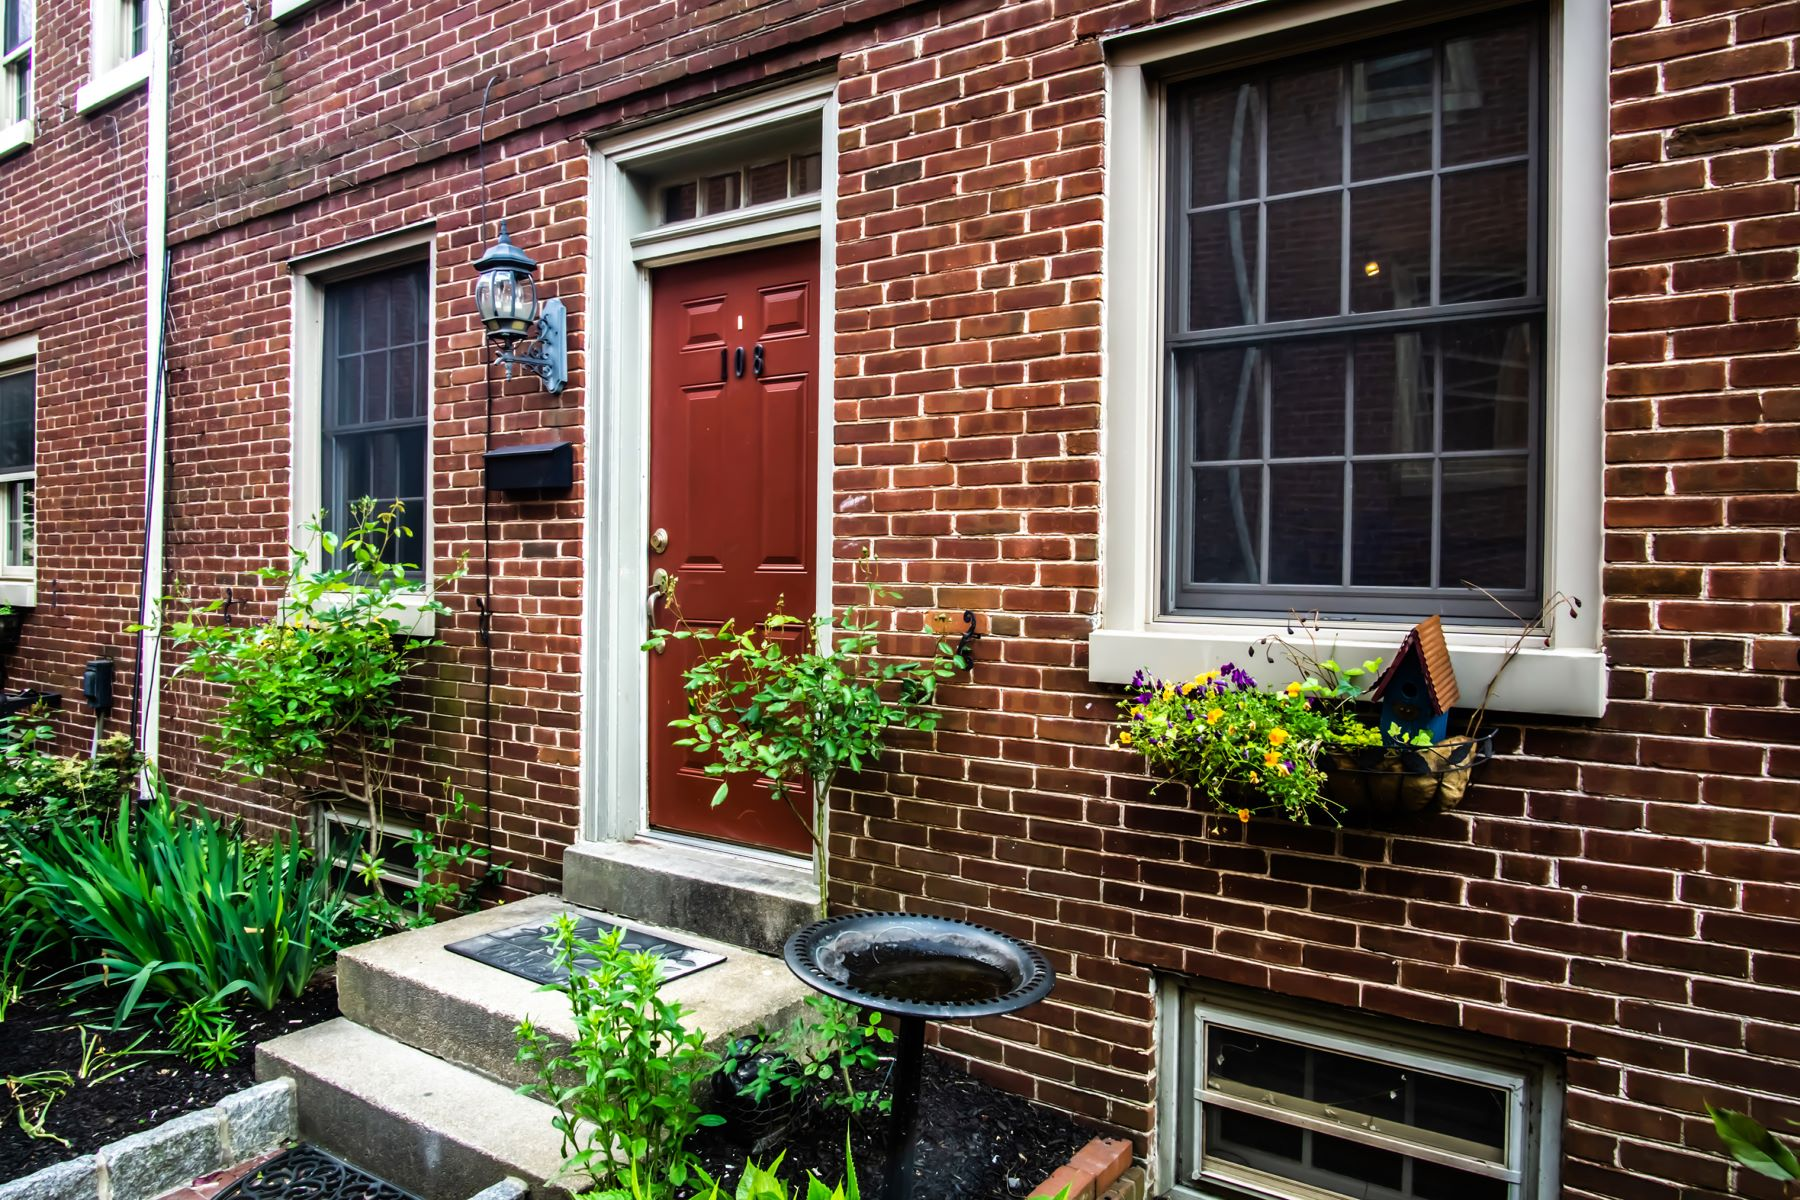 townhouses for Sale at 772 S FRONT ST #108, 108, Philadelphia, Pennsylvania 19147 United States